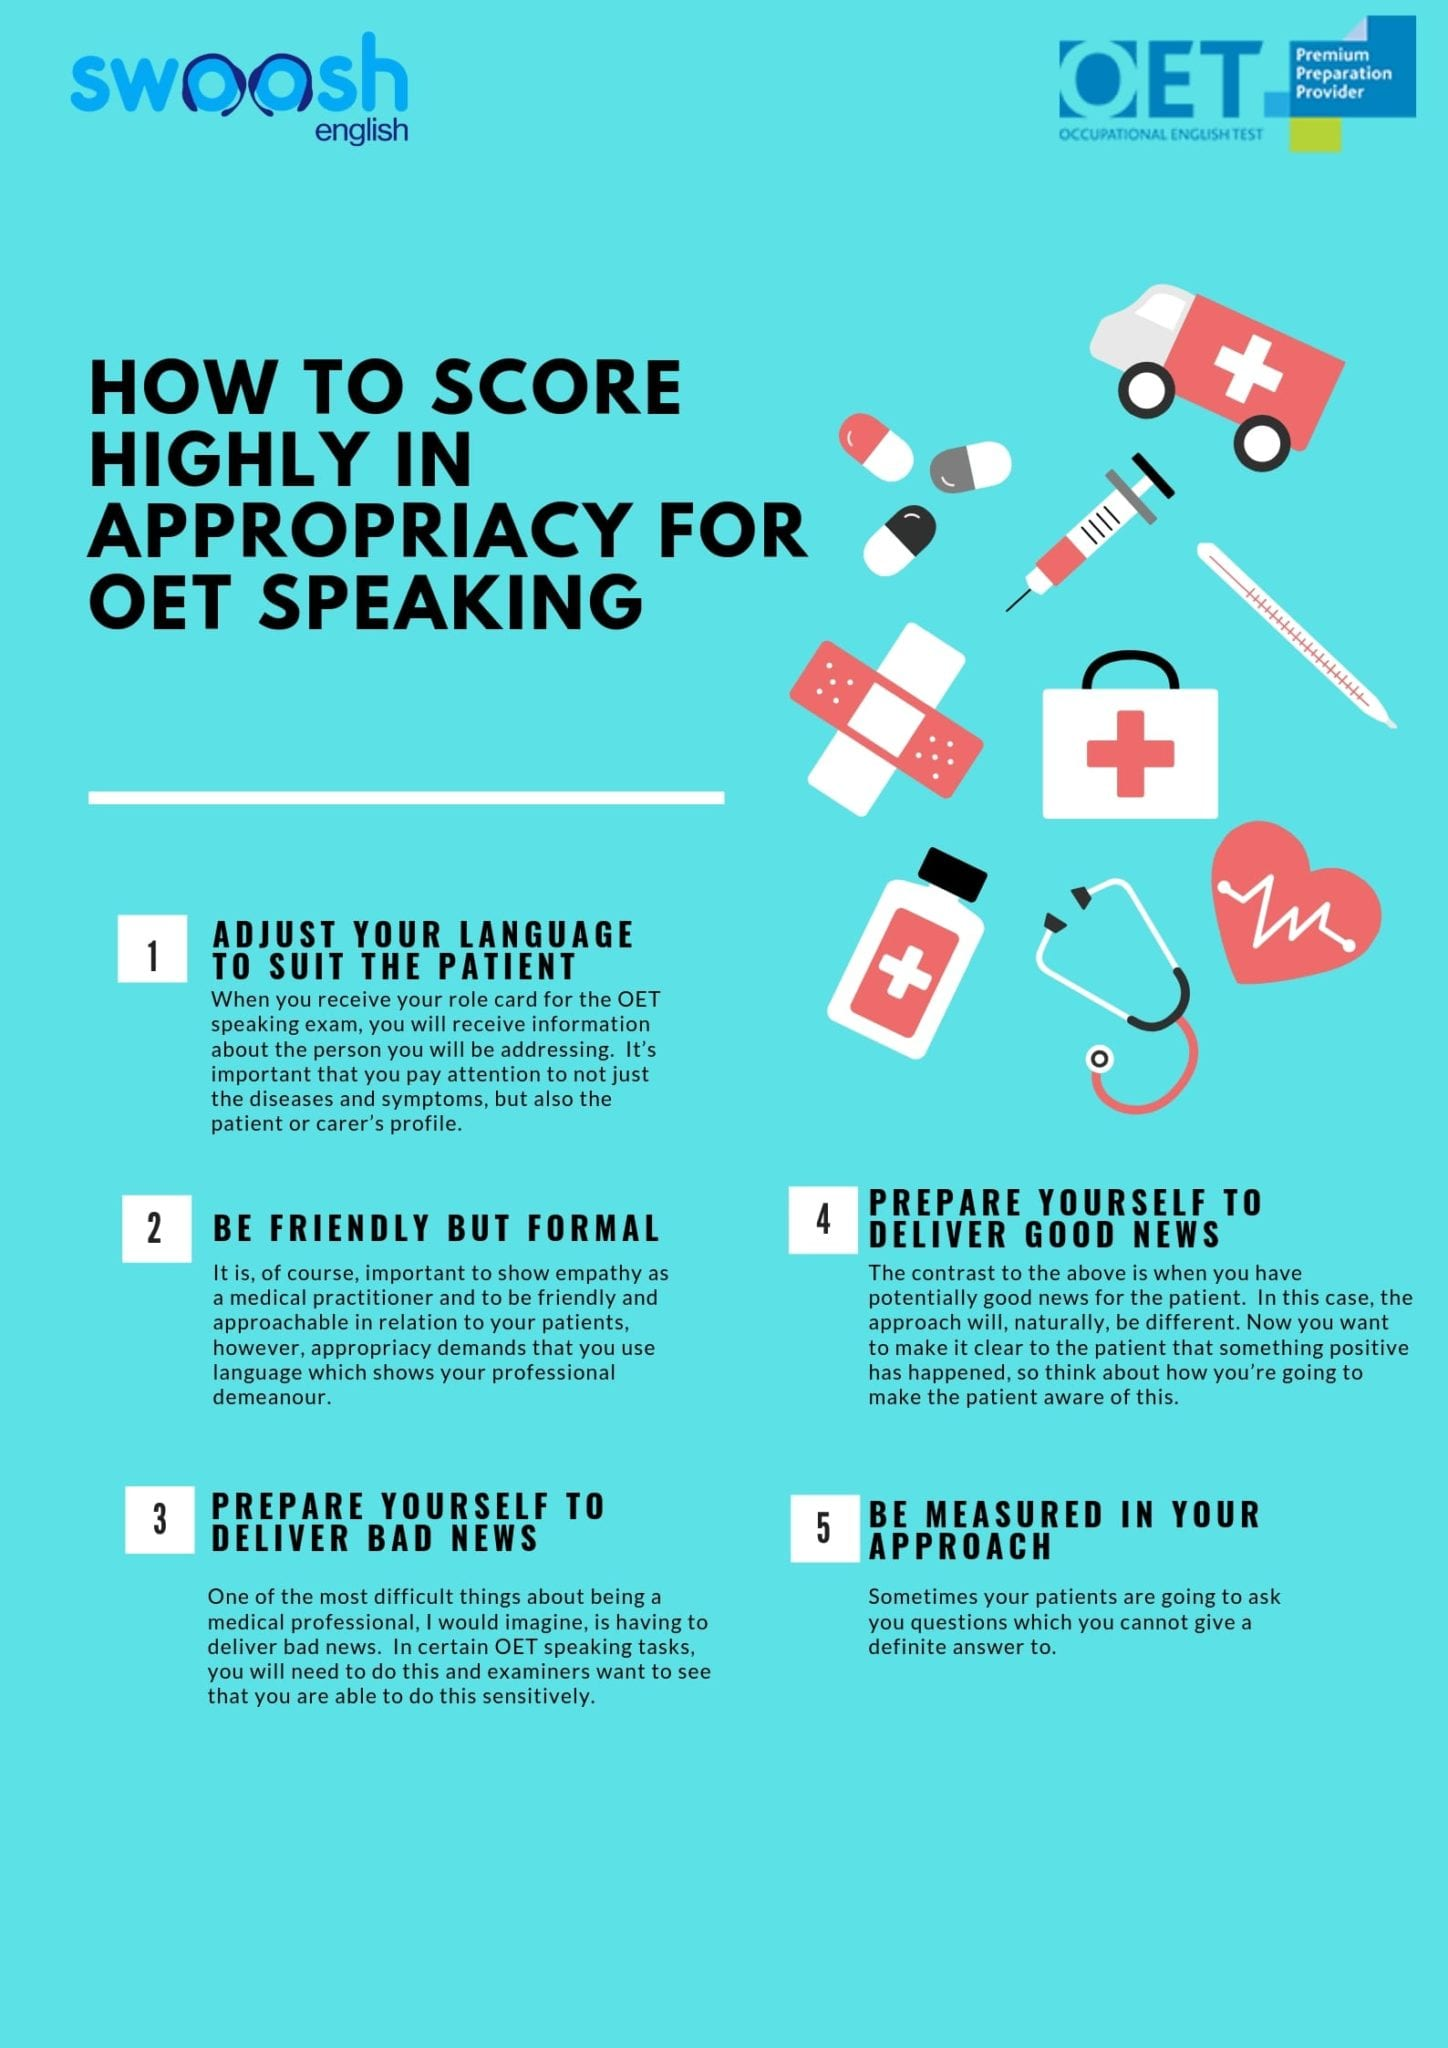 How to score highly in appropriacy for OET Speaking infographic